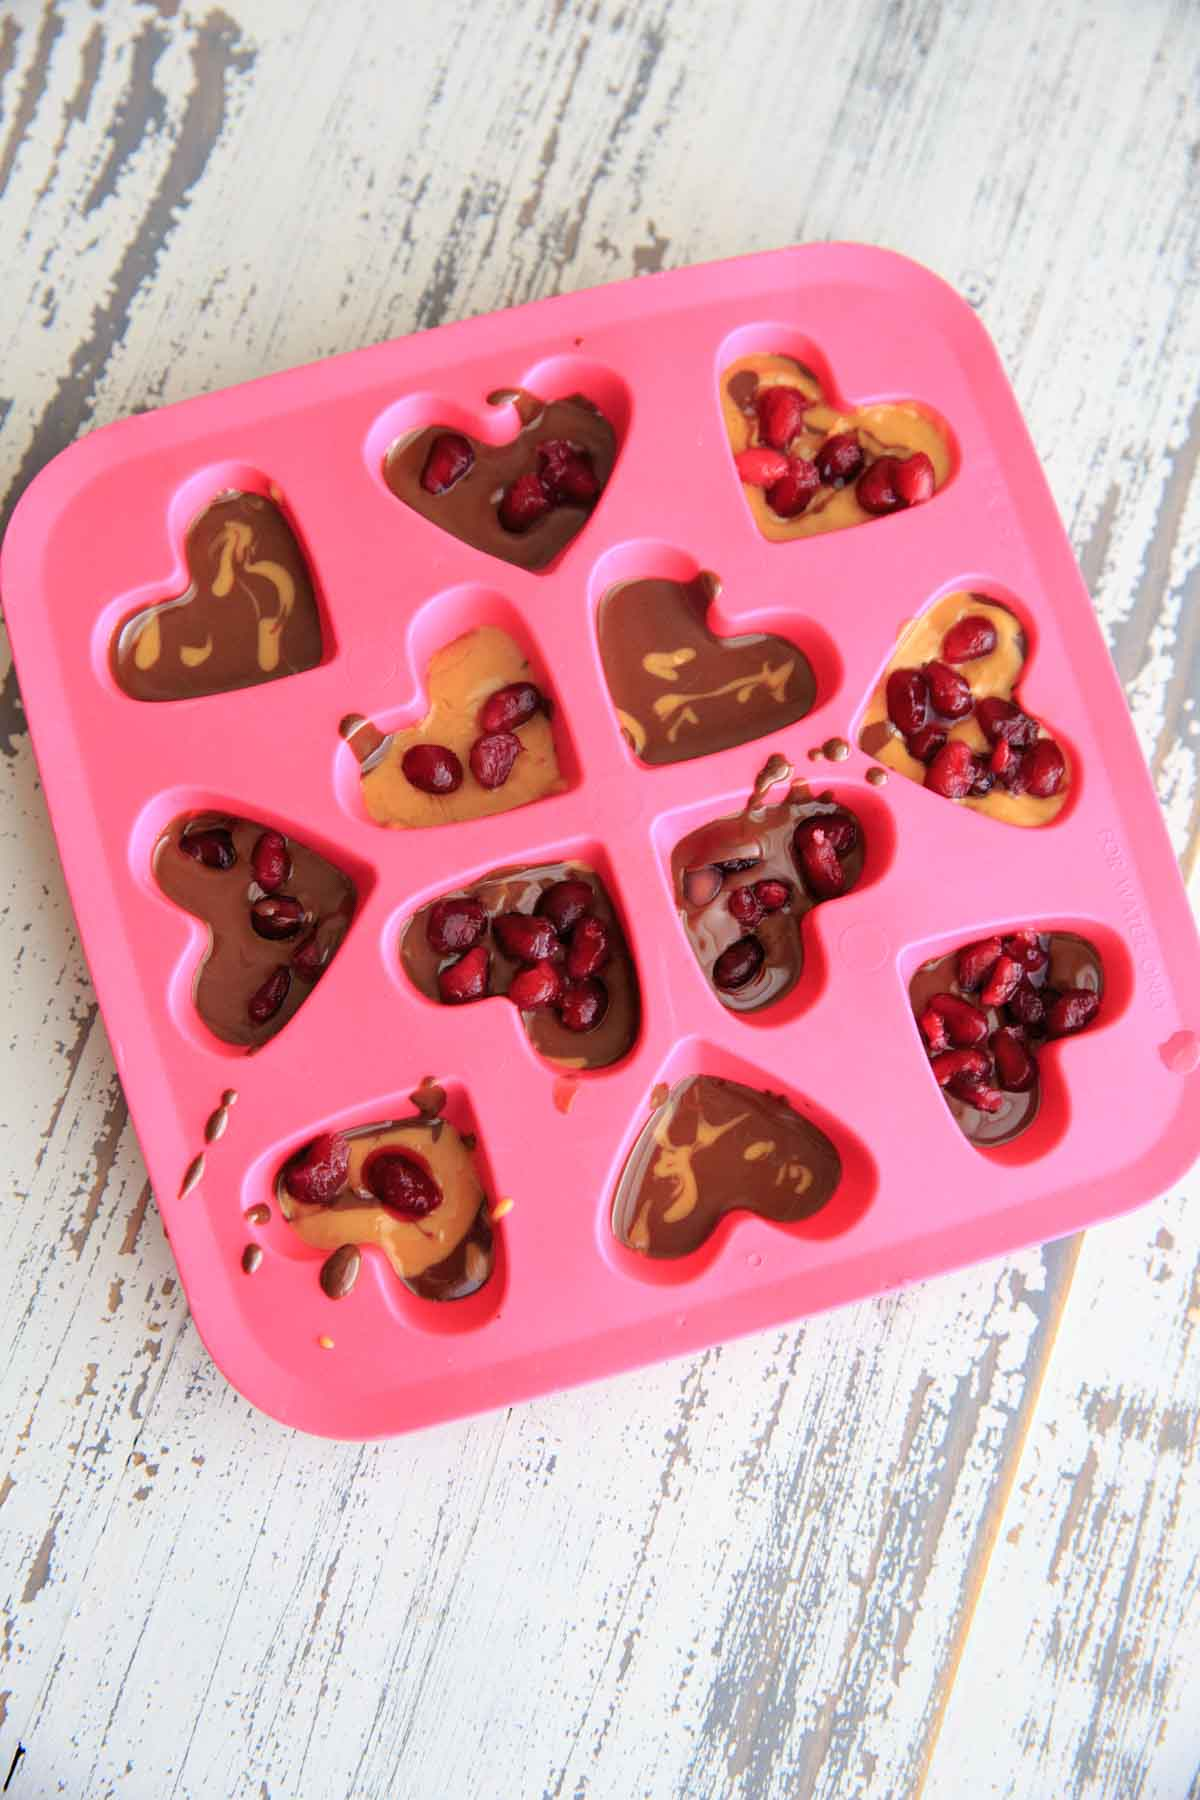 Chocolate Pomegranate Candy Recipe - melted chocolate peanut butter with pomegranate seeds